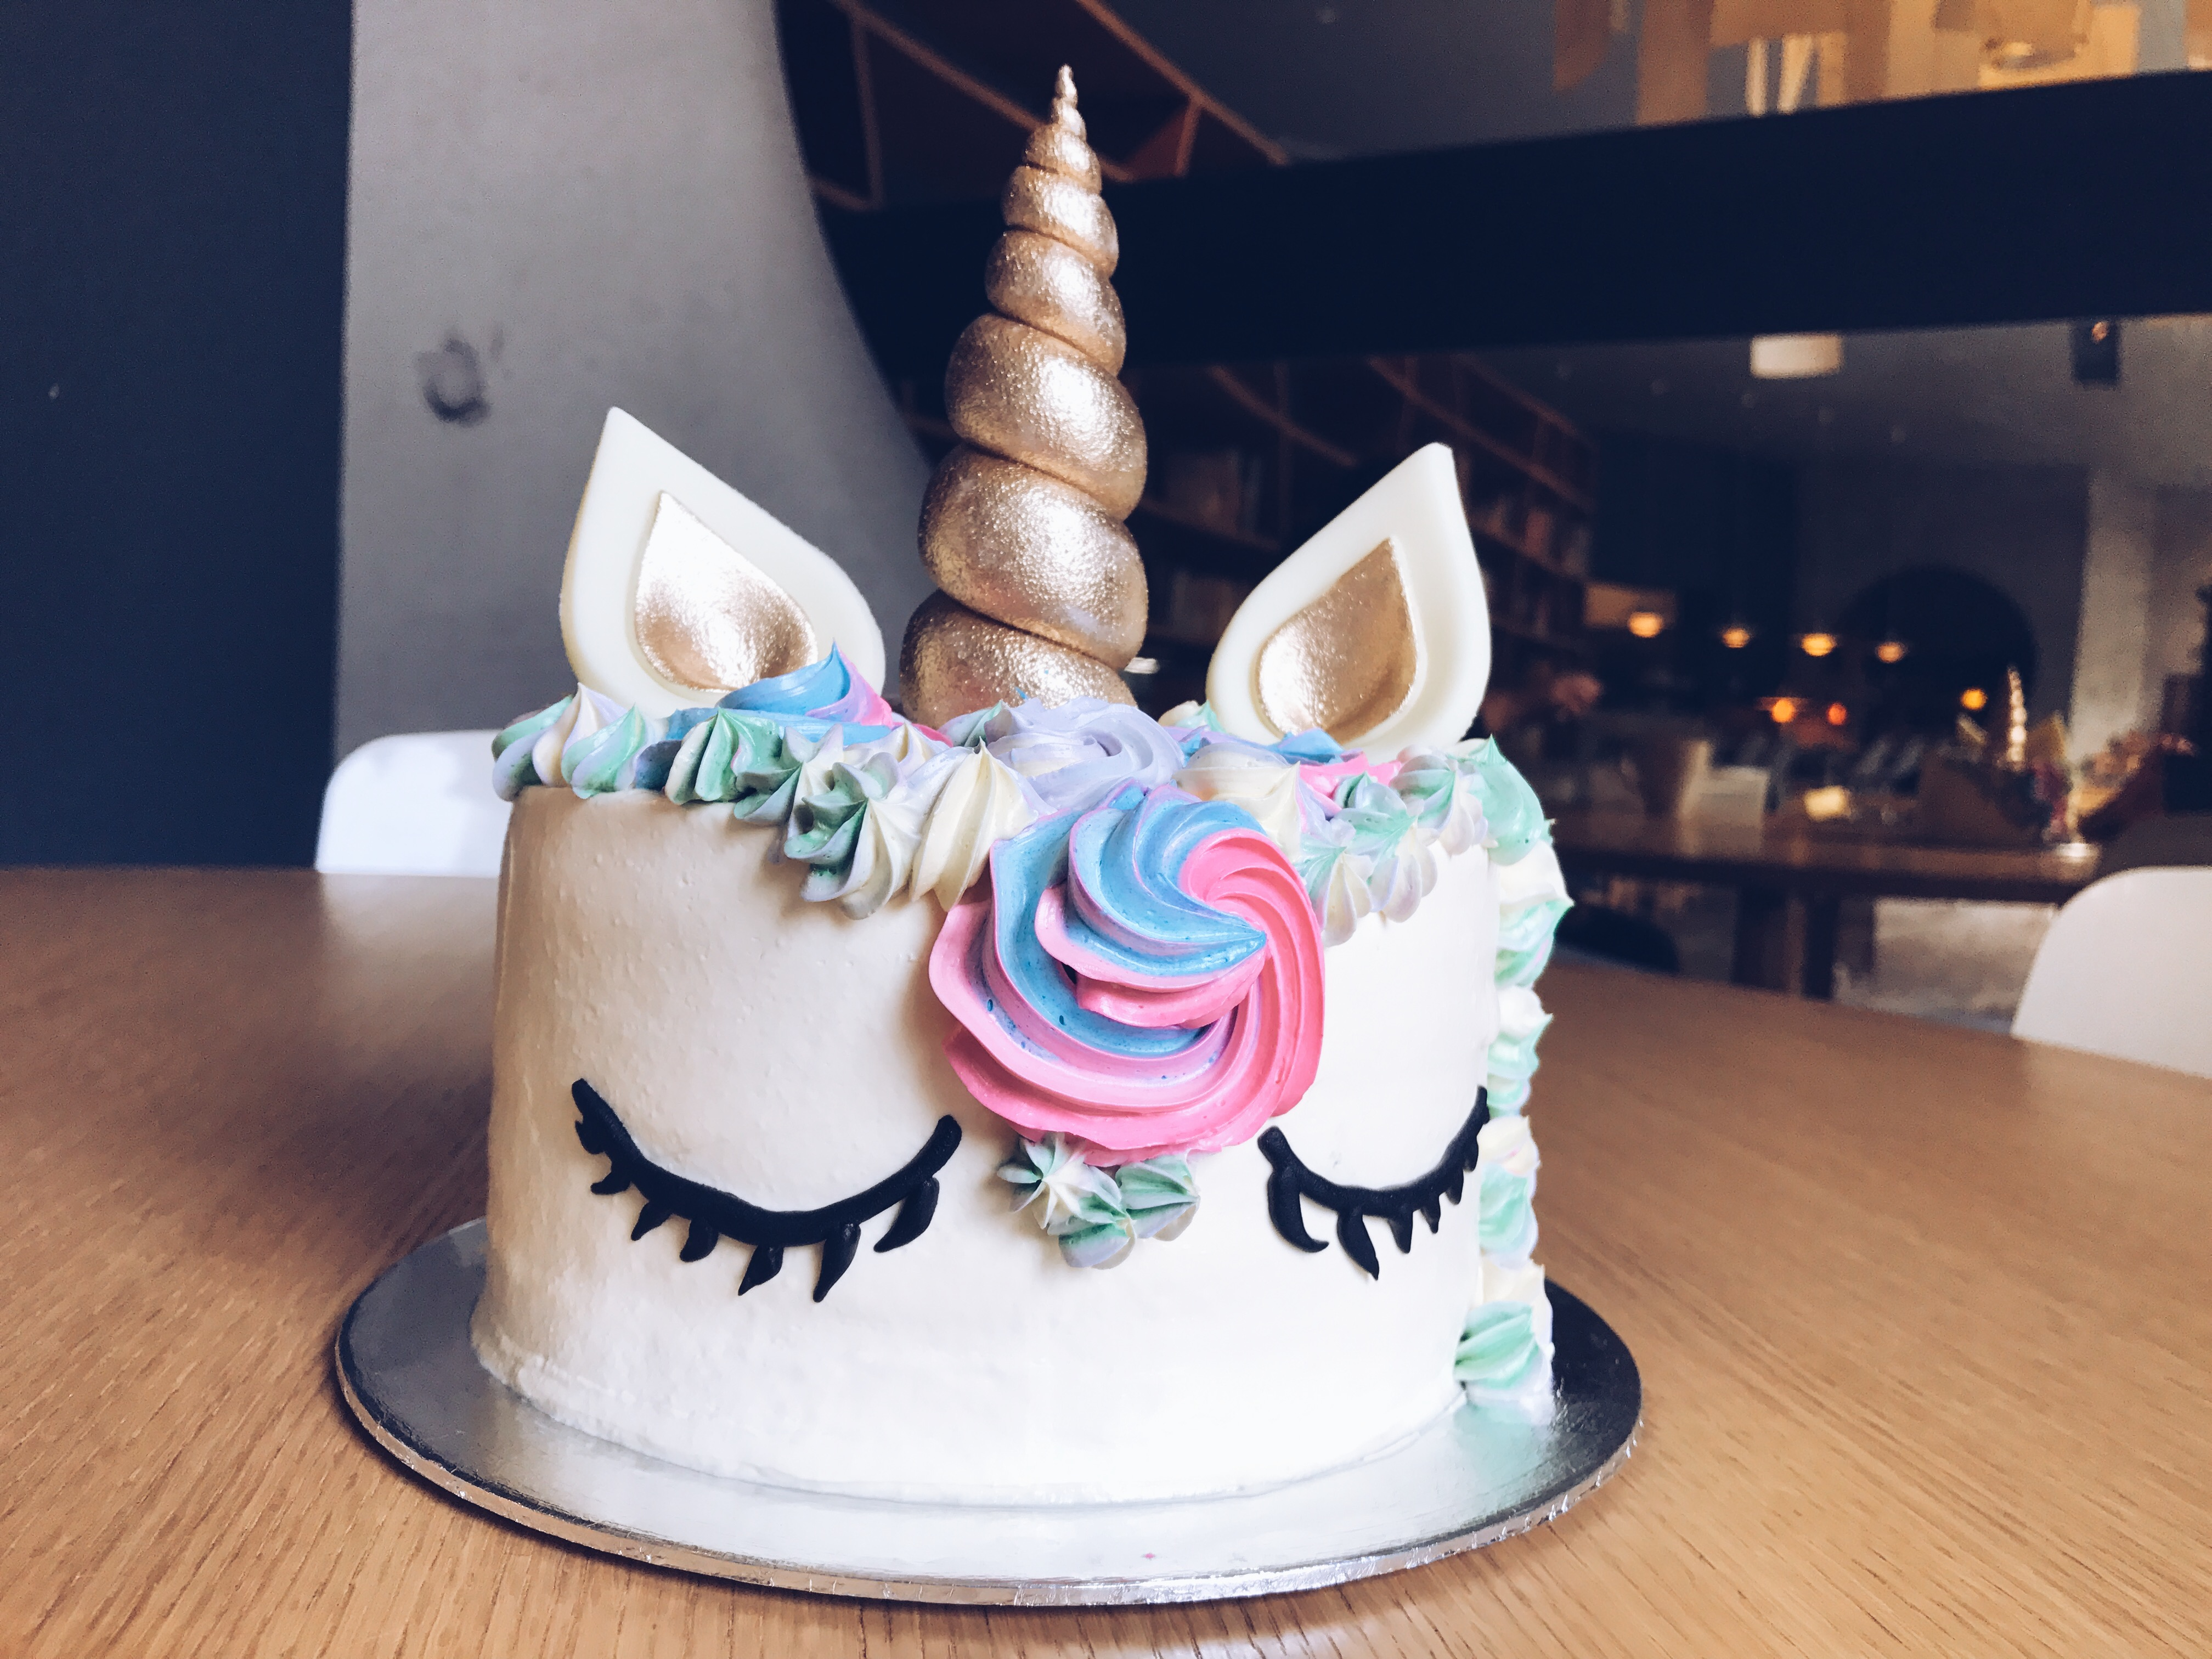 Unicorn Cakes Are Super Trendy Right Now With Loads Of Birthday Parties Having These Magical As Their Dessert Table Centrepiece